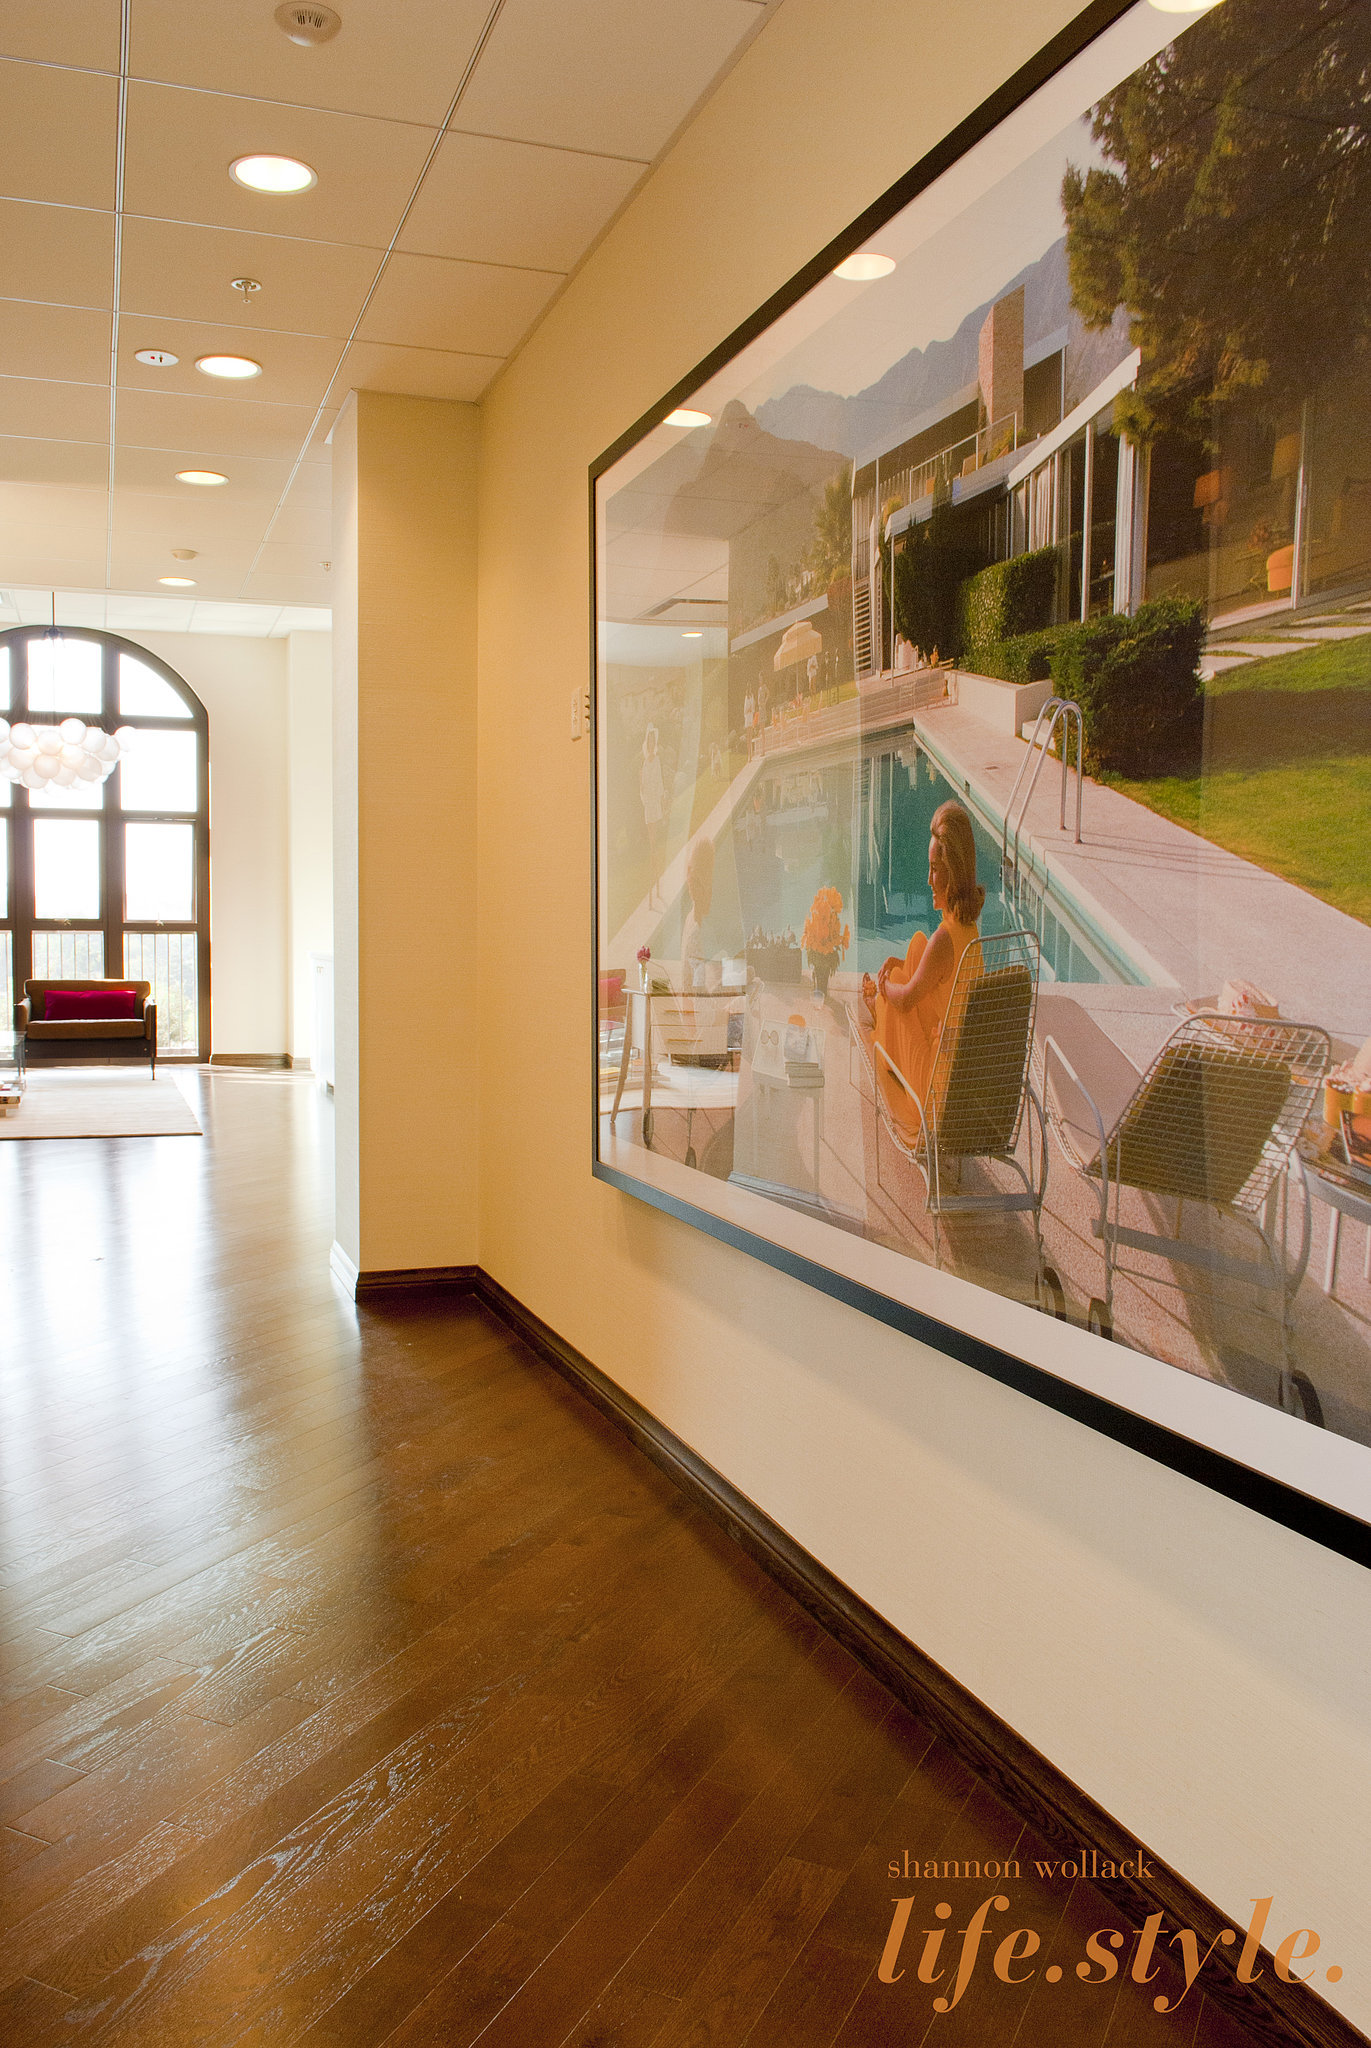 A large Slim Aarons print complements the midcentury decor sprinkled throughout the office.